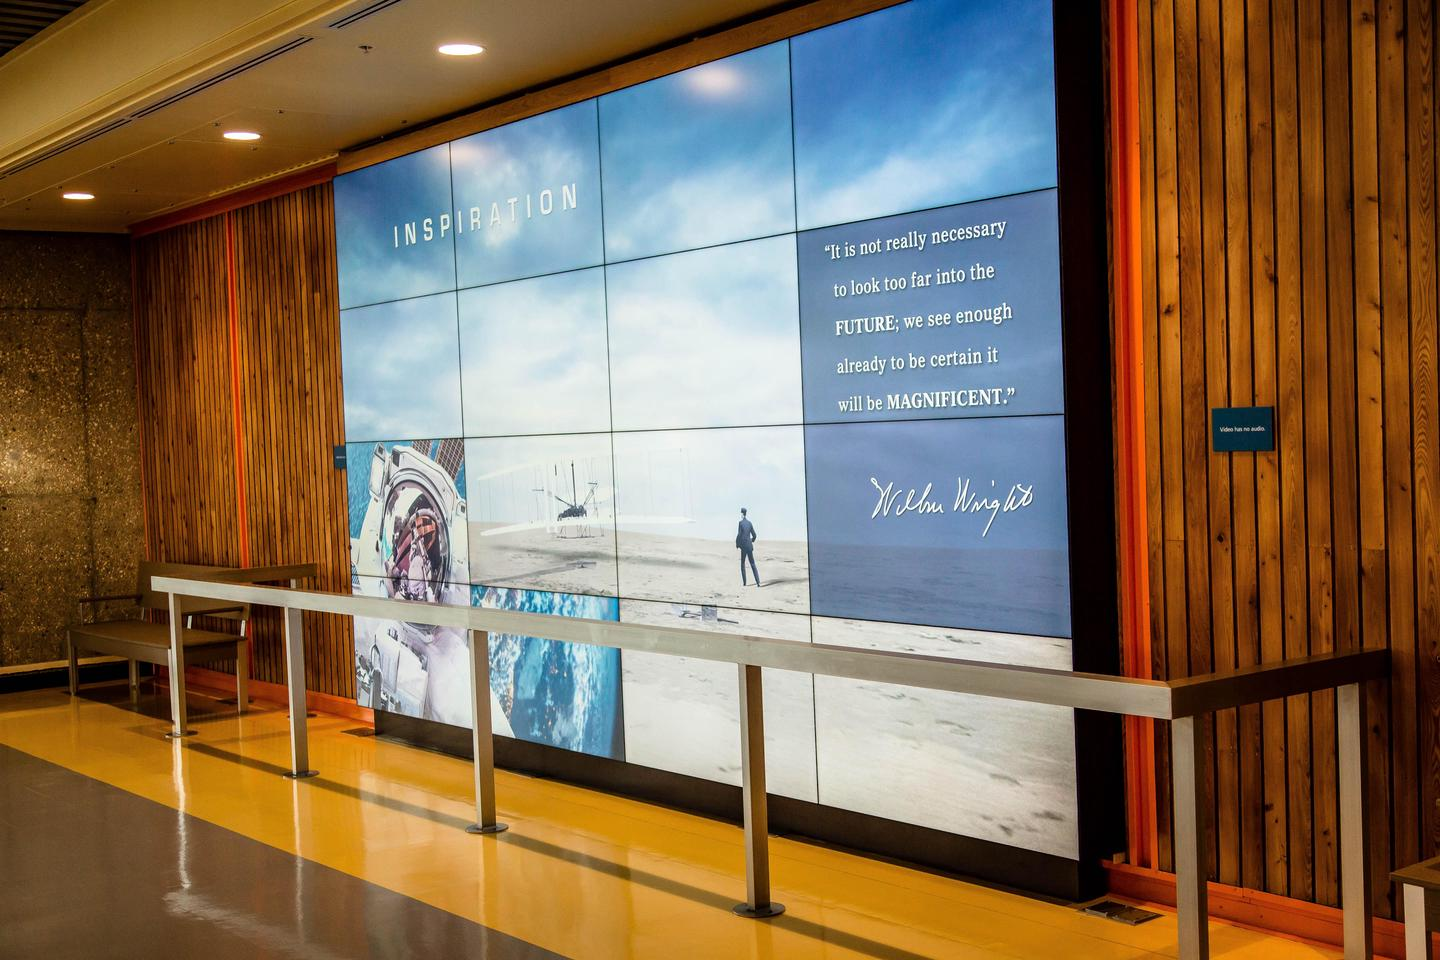 video wallThe video wall in the Flight Rooom depicts great moments in powered flight.